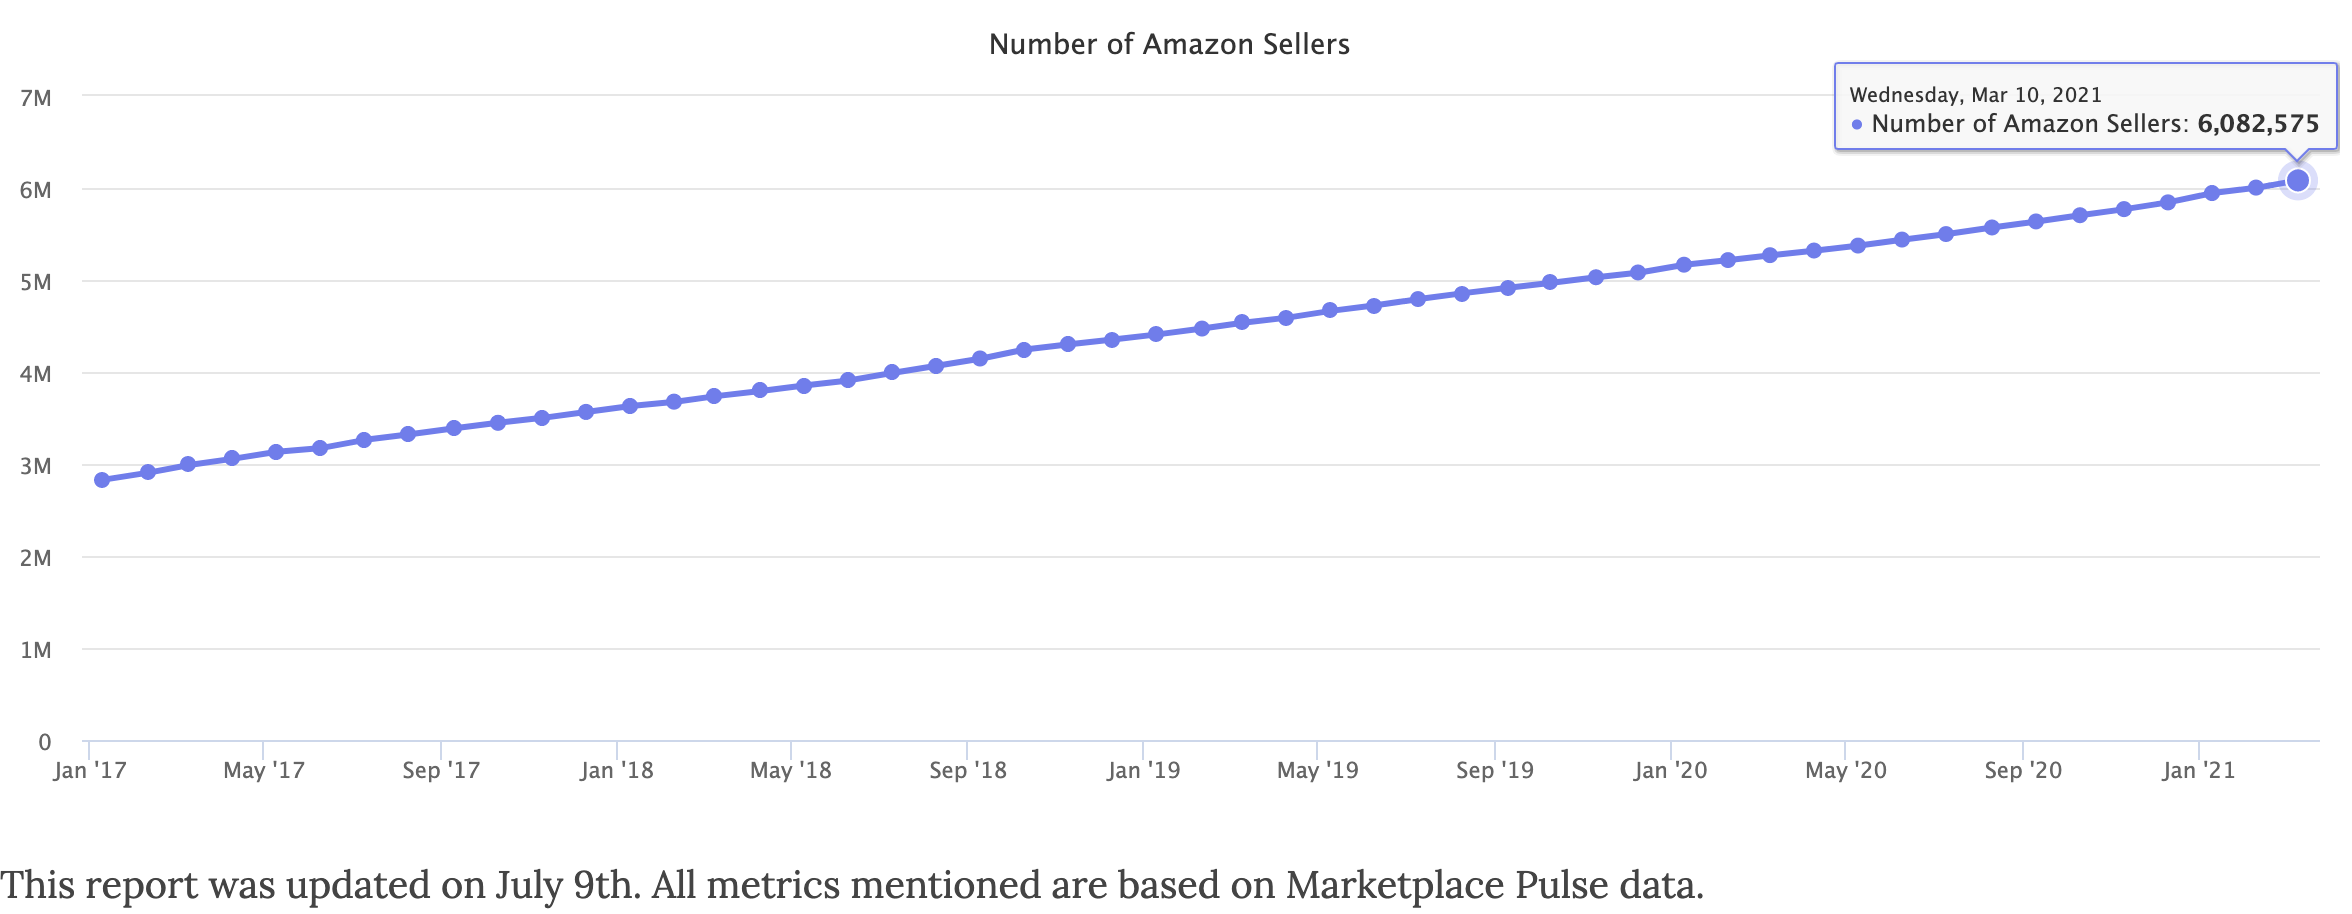 Numbers of Sellers on Amazon in 2021 March, from Marketplace Pulse